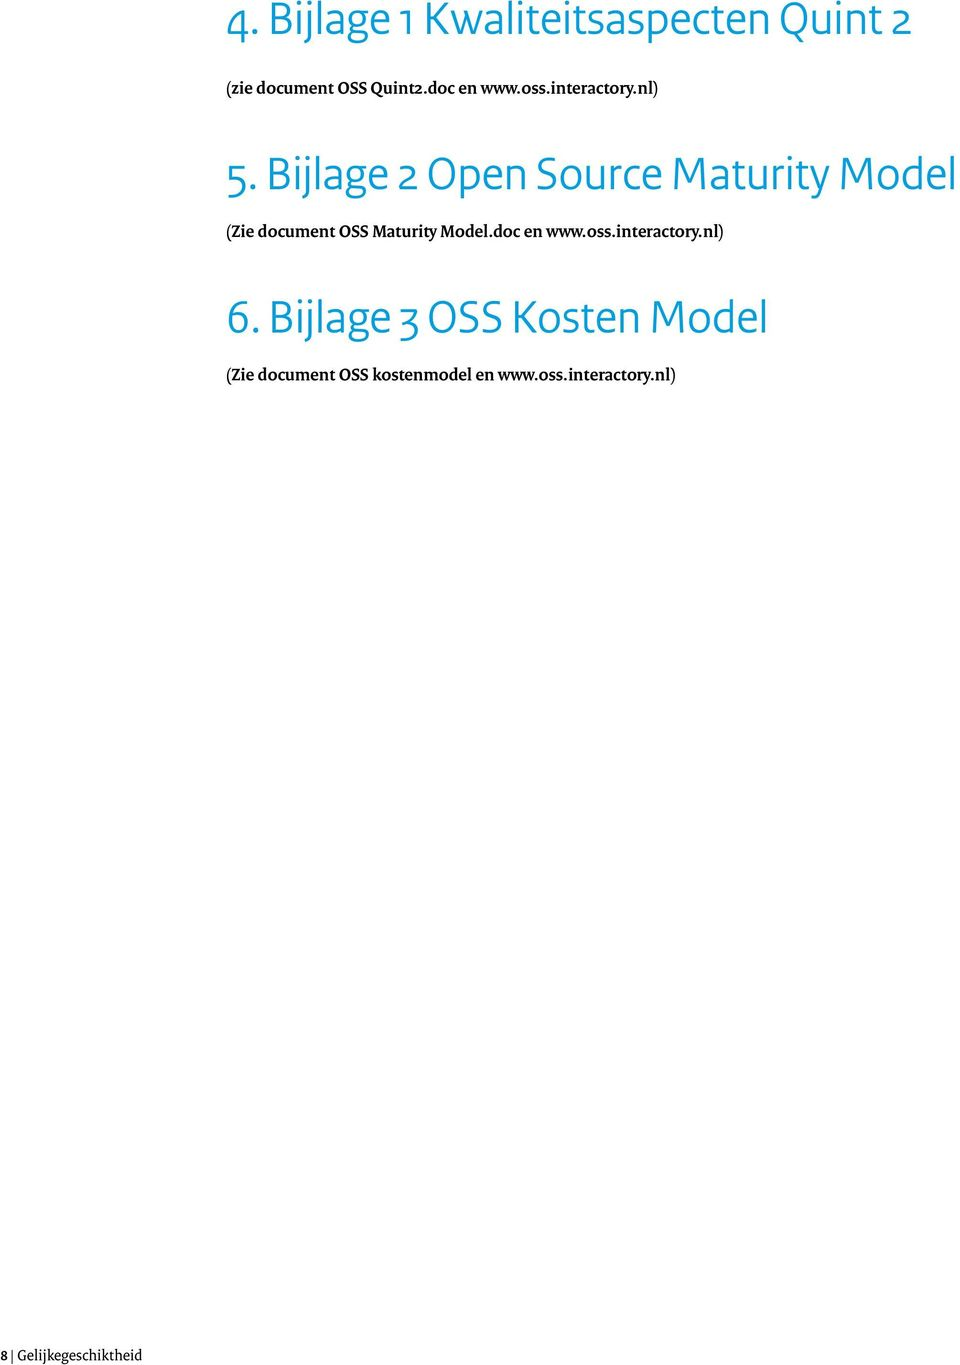 Bijlage 2 Open Source Maturity Model (Zie document OSS Maturity Model.